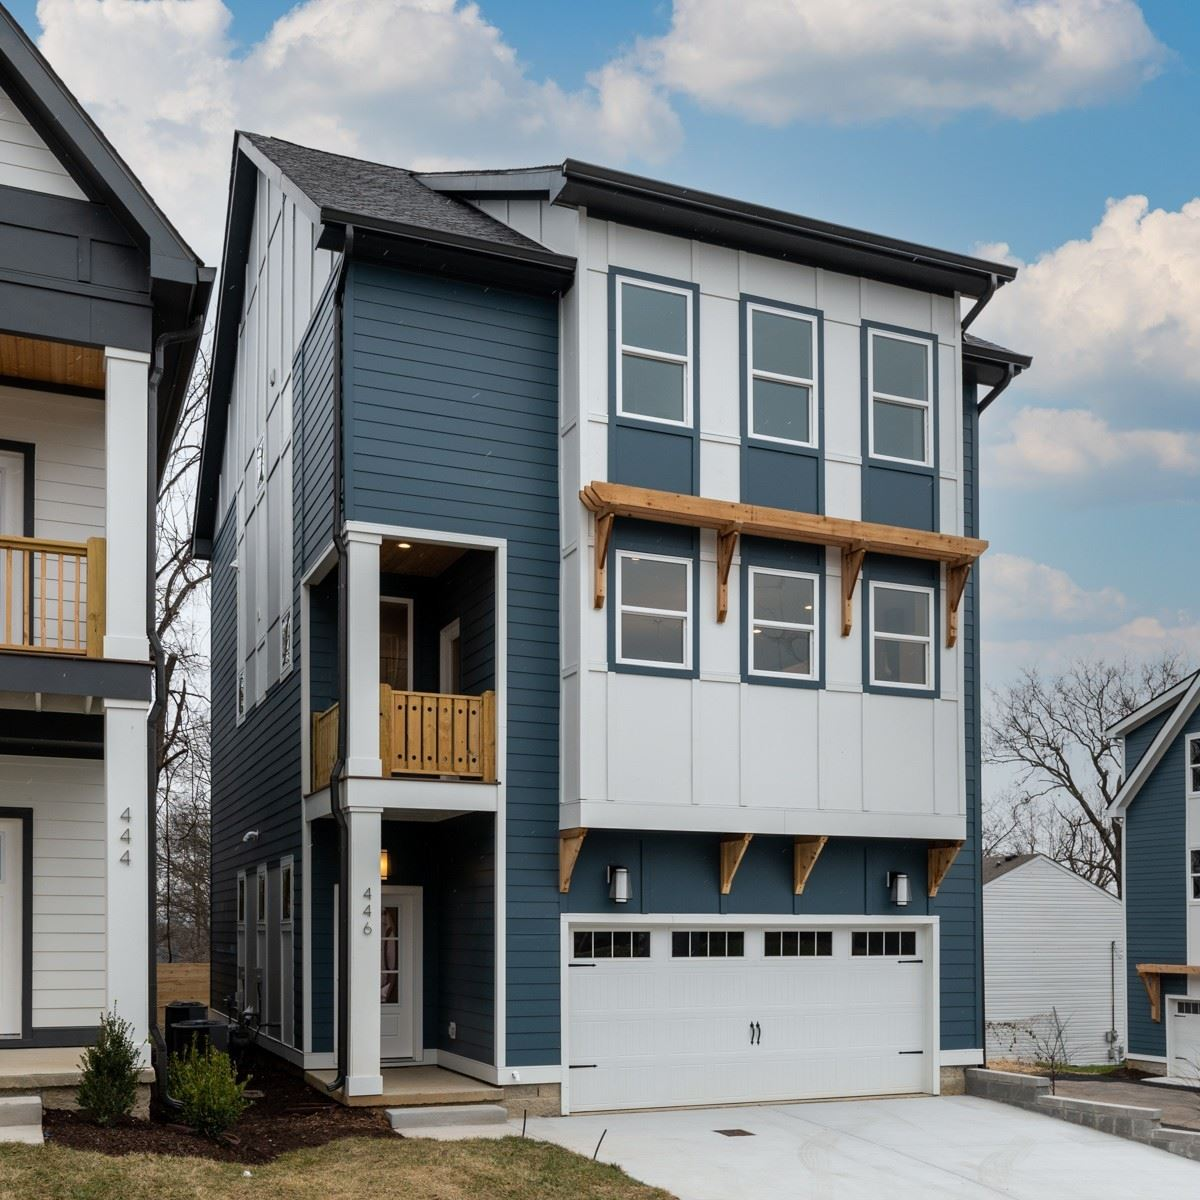 434 Becanni Lane #10, Nashville, TN 37209 - MLS#: 2223148